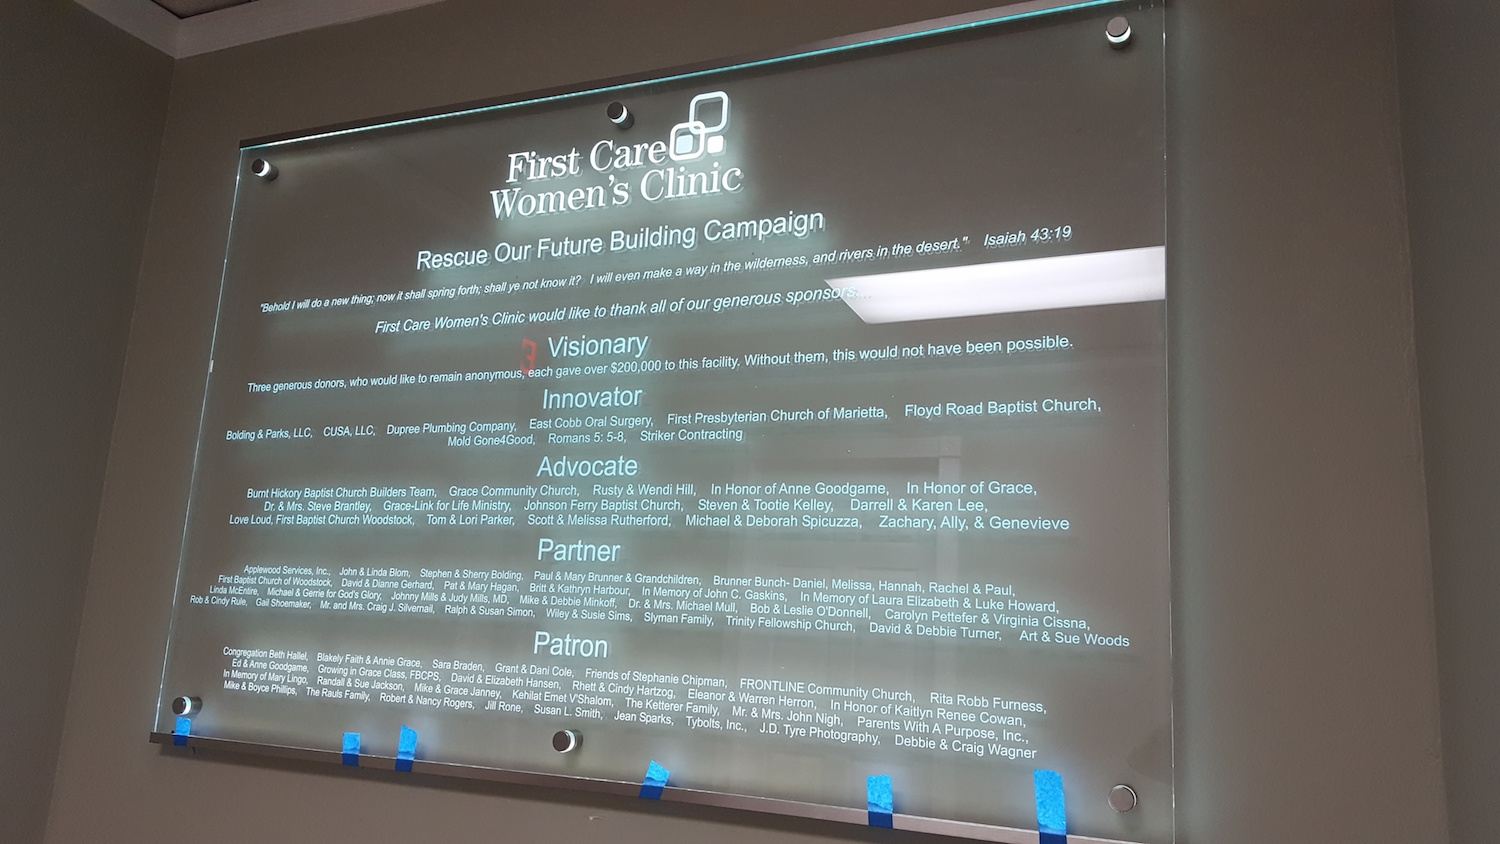 First Care Women's Clinic Donor Wall by Glass Graphics of Atlanta